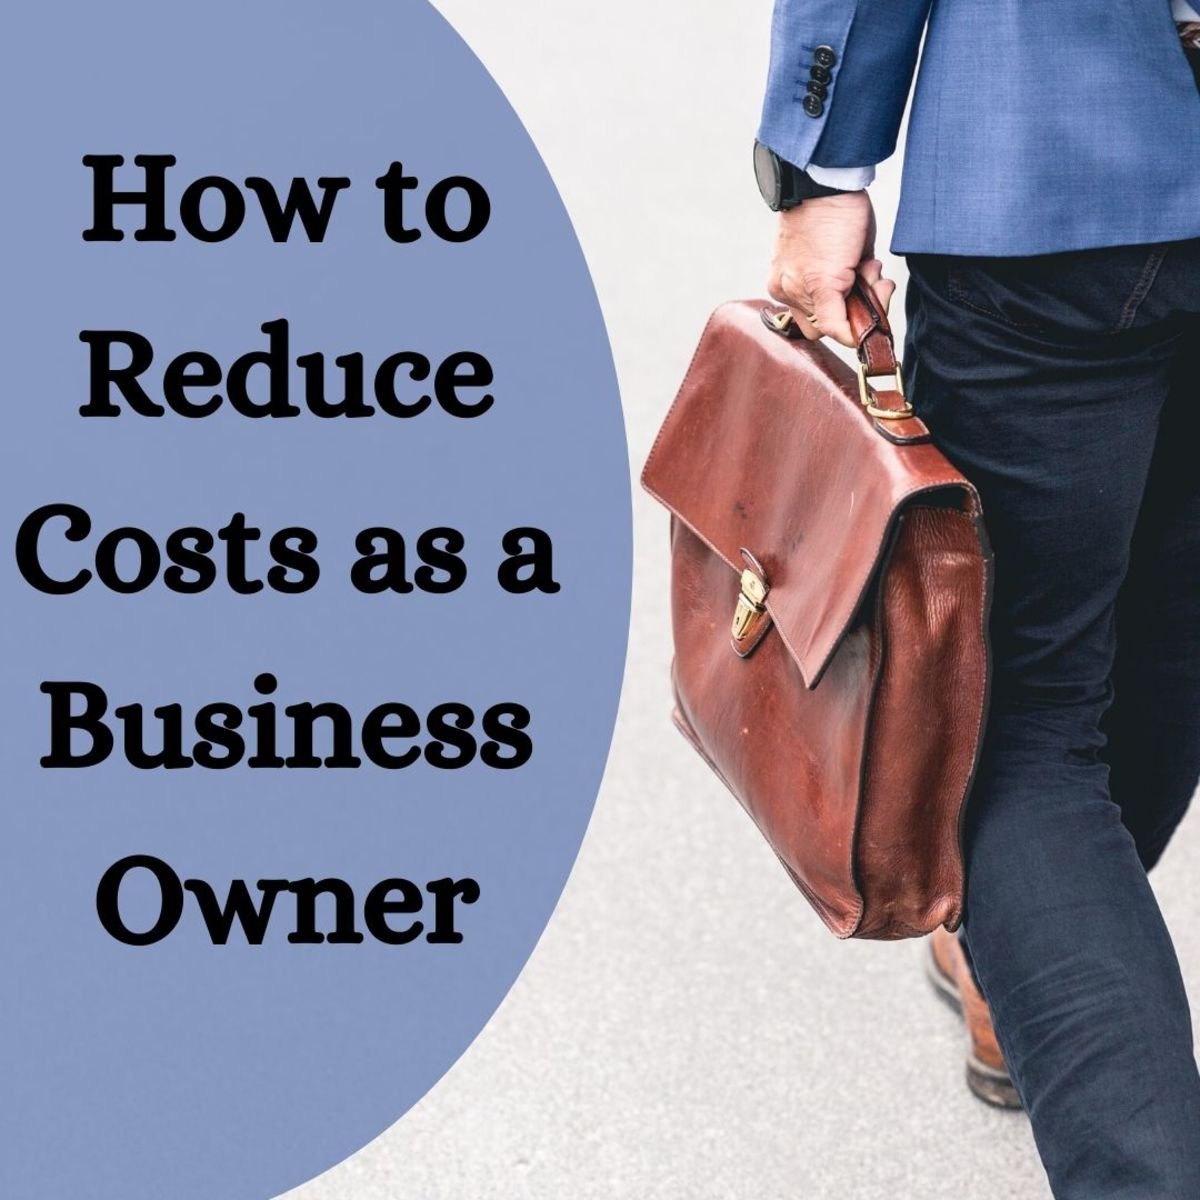 5 Ways a Business Owner Can Reduce Costs